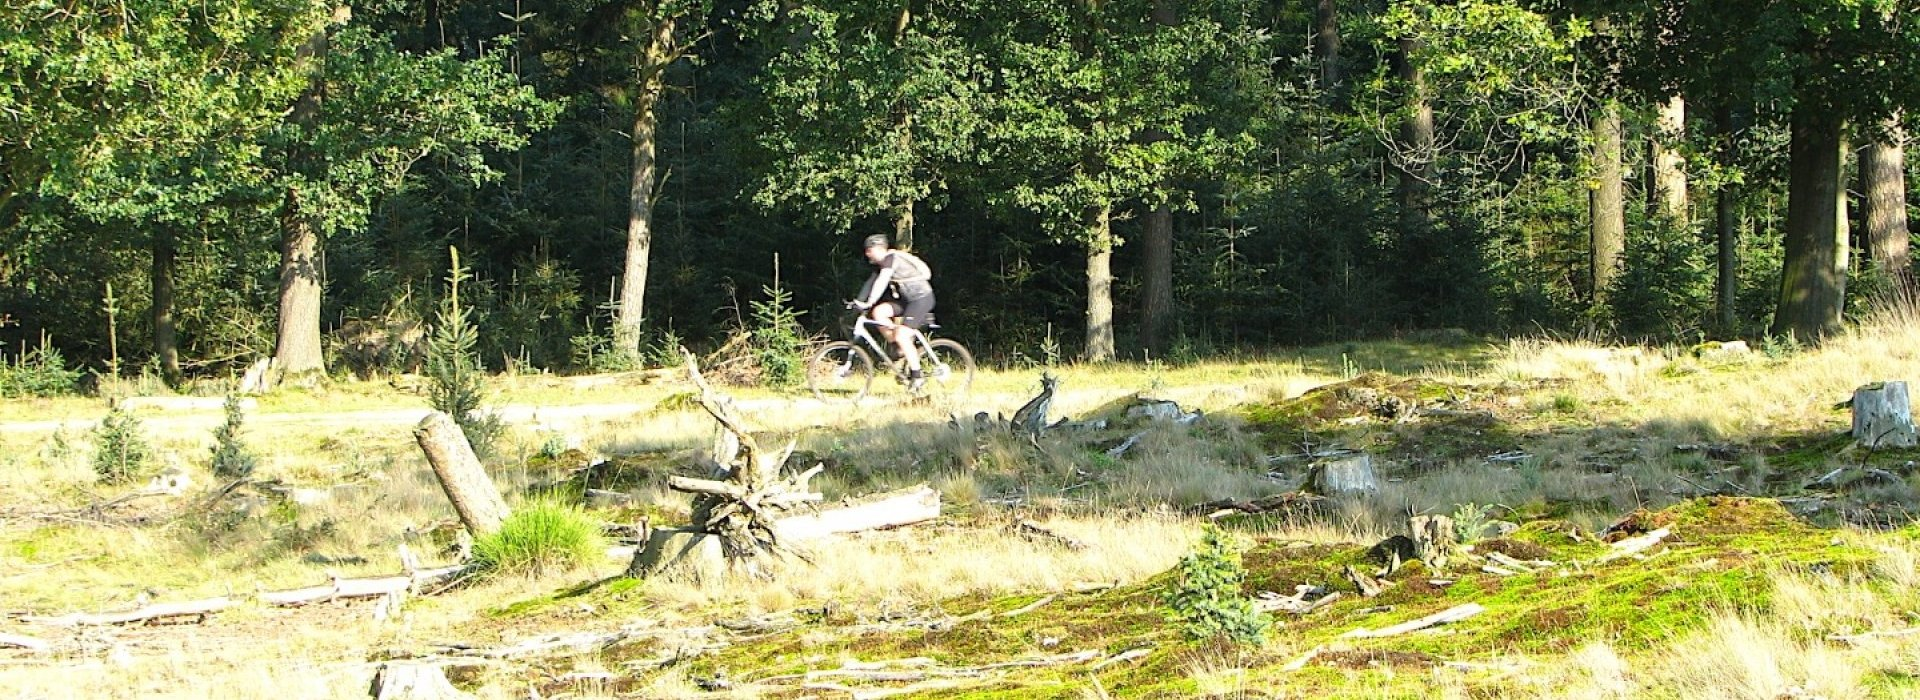 mountainbiken-in-drente_1.jpg